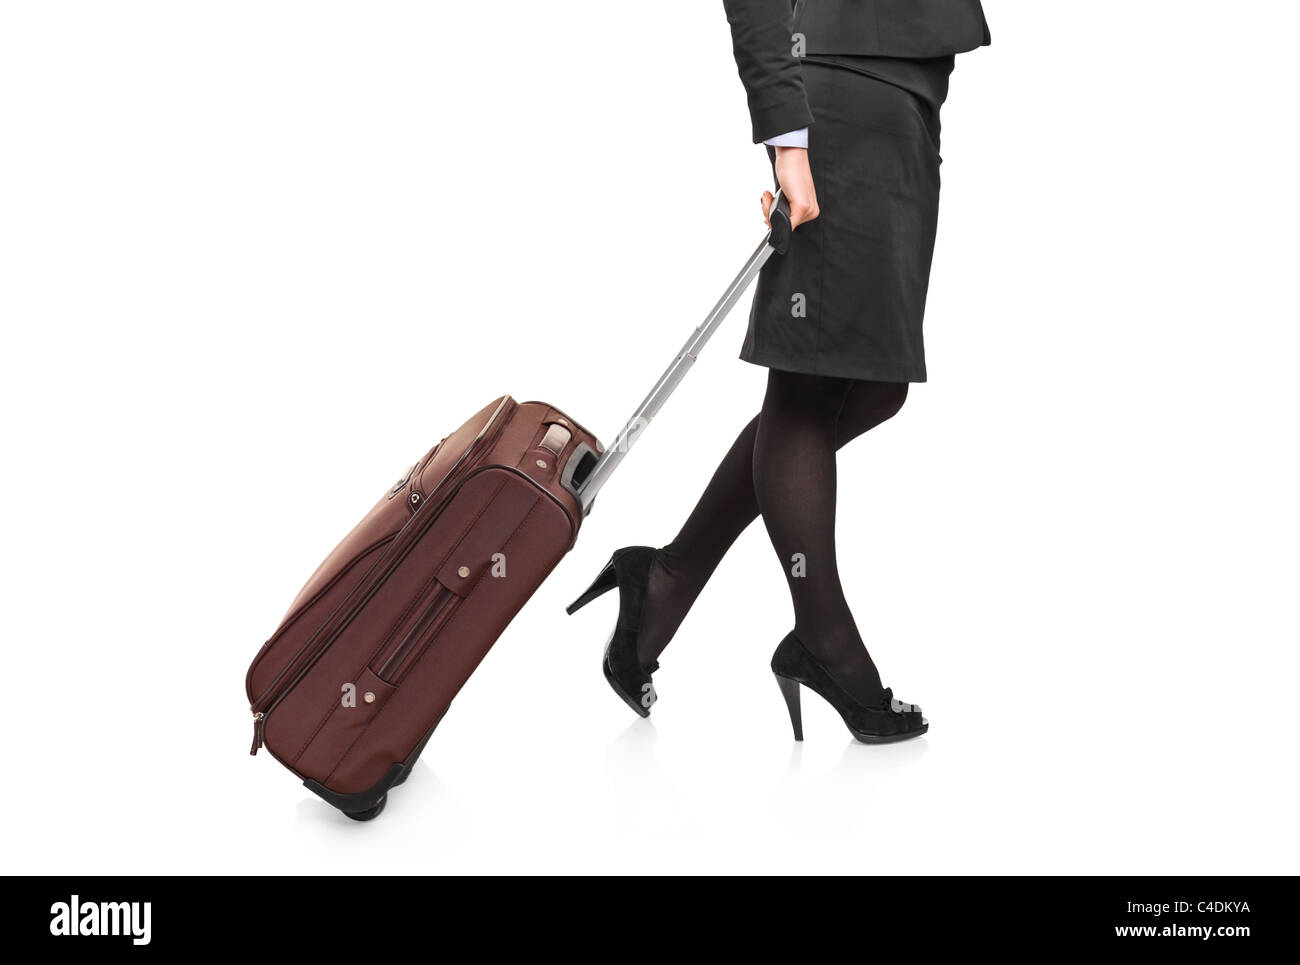 Businesswoman carrying a luggage - Stock Image